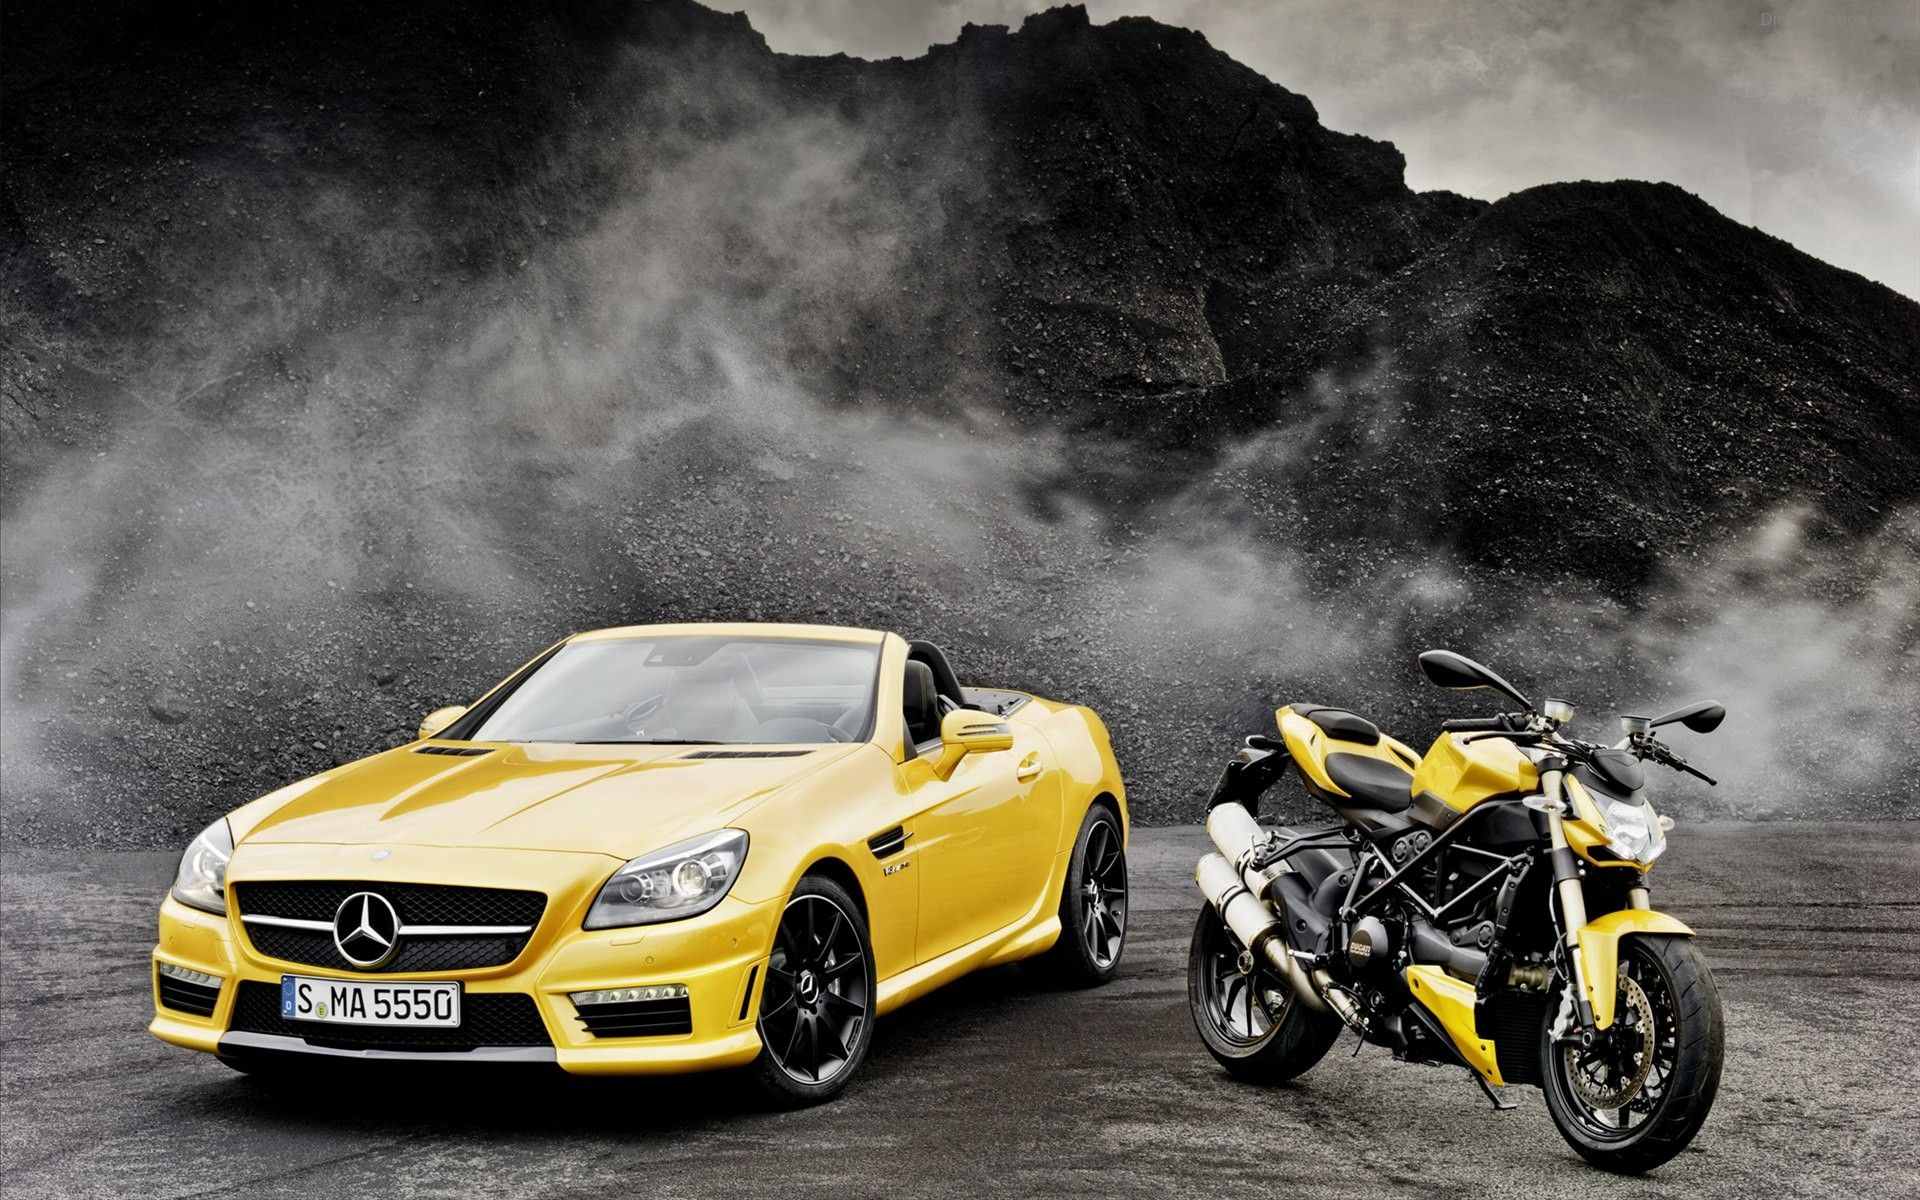 Mercedes Slk Ducati 848 Streetfighter Widescreen Car Hd Wallpaper